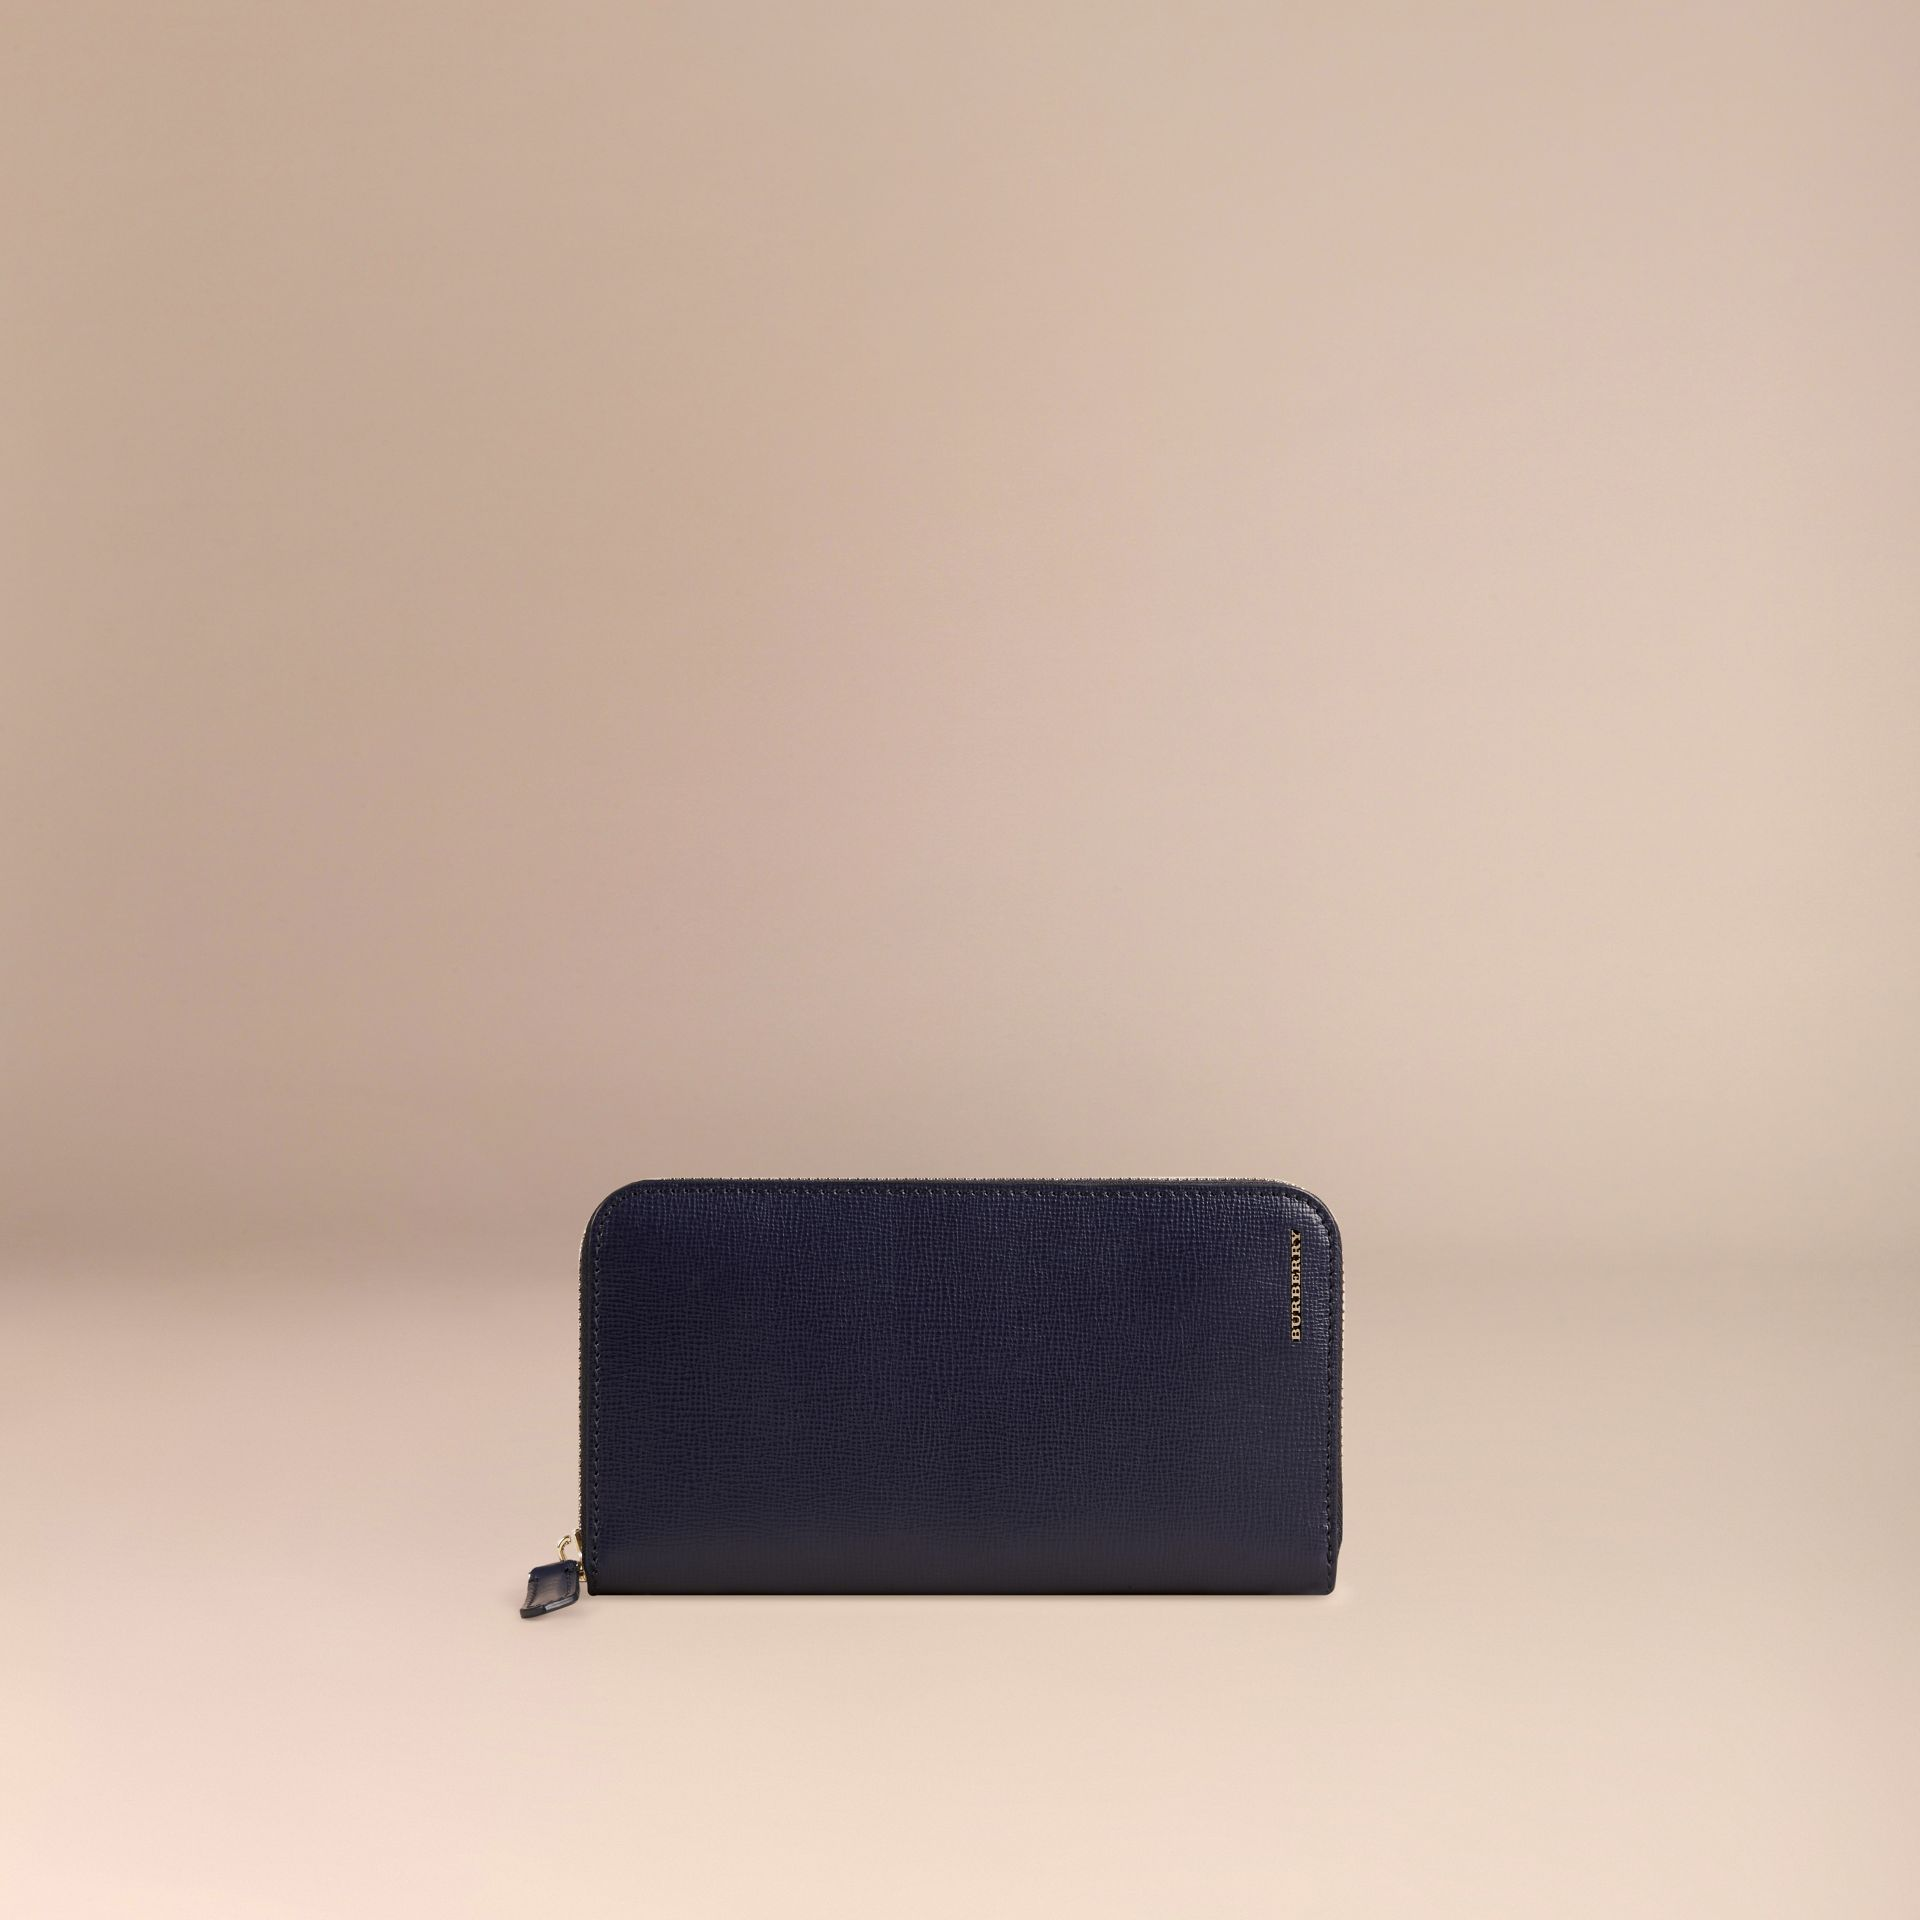 Dark navy London Leather Ziparound Wallet Dark Navy - gallery image 3